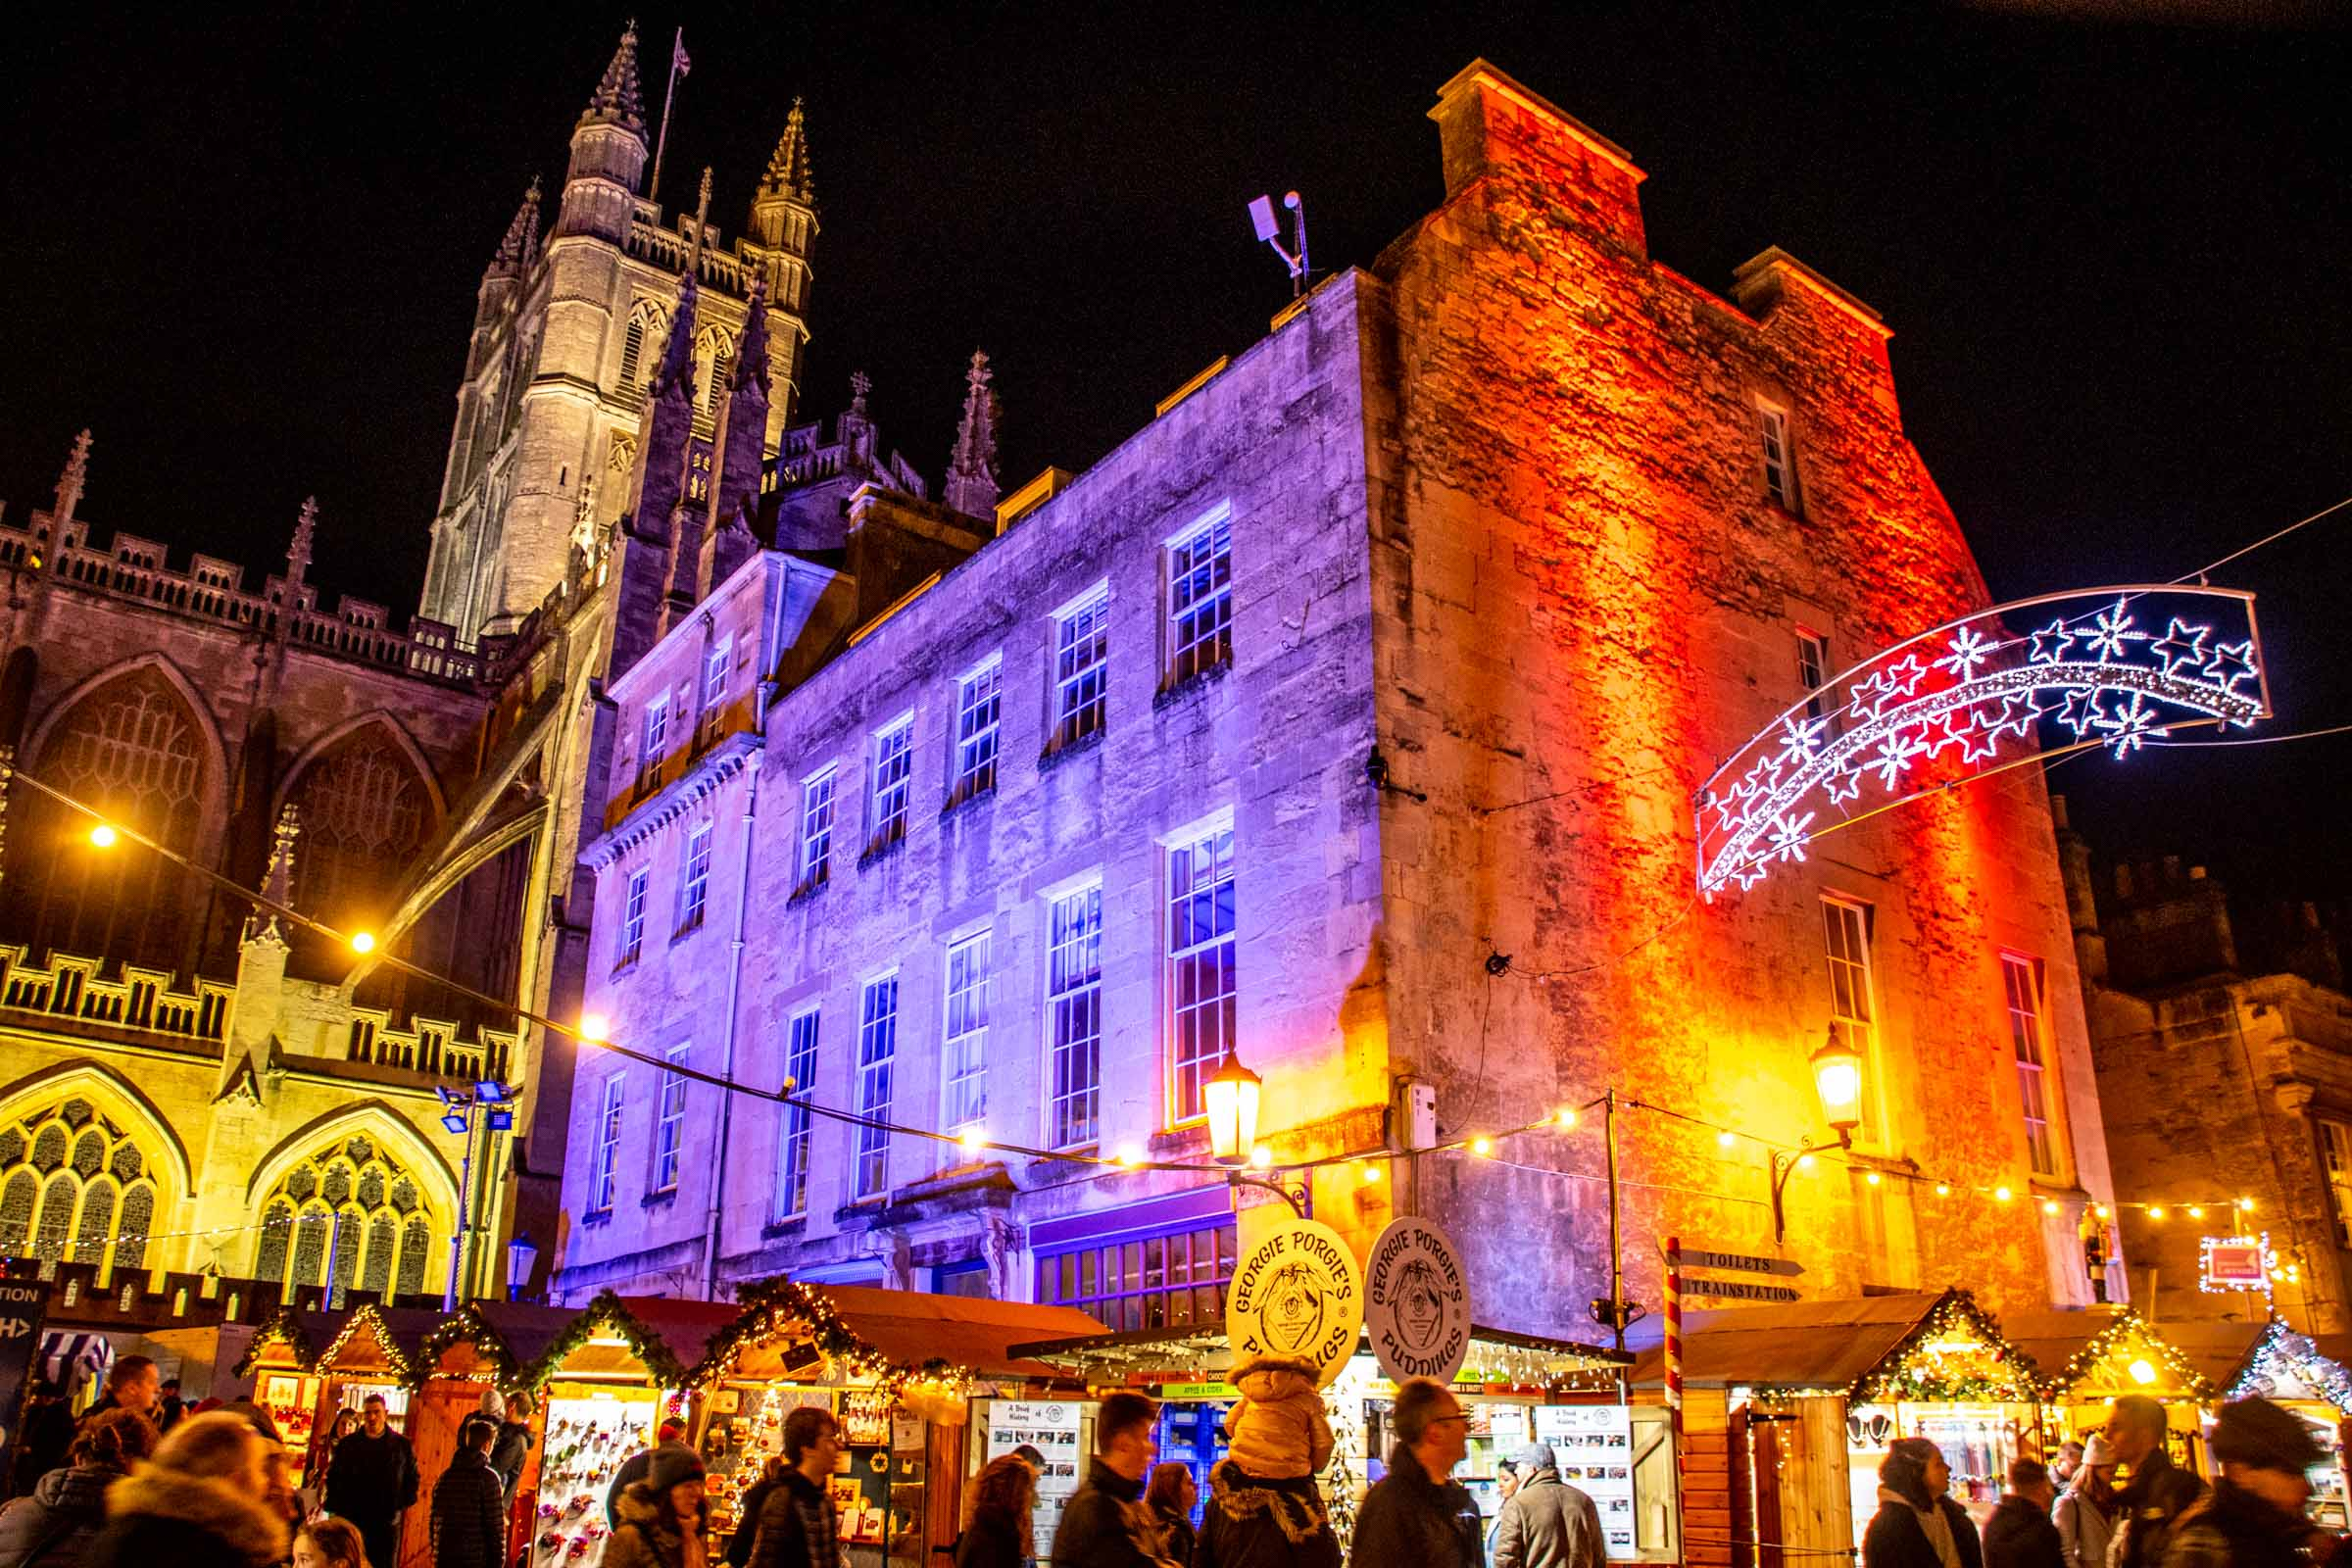 People shopping at night by Bath Abbey, lit up in purple and red lights